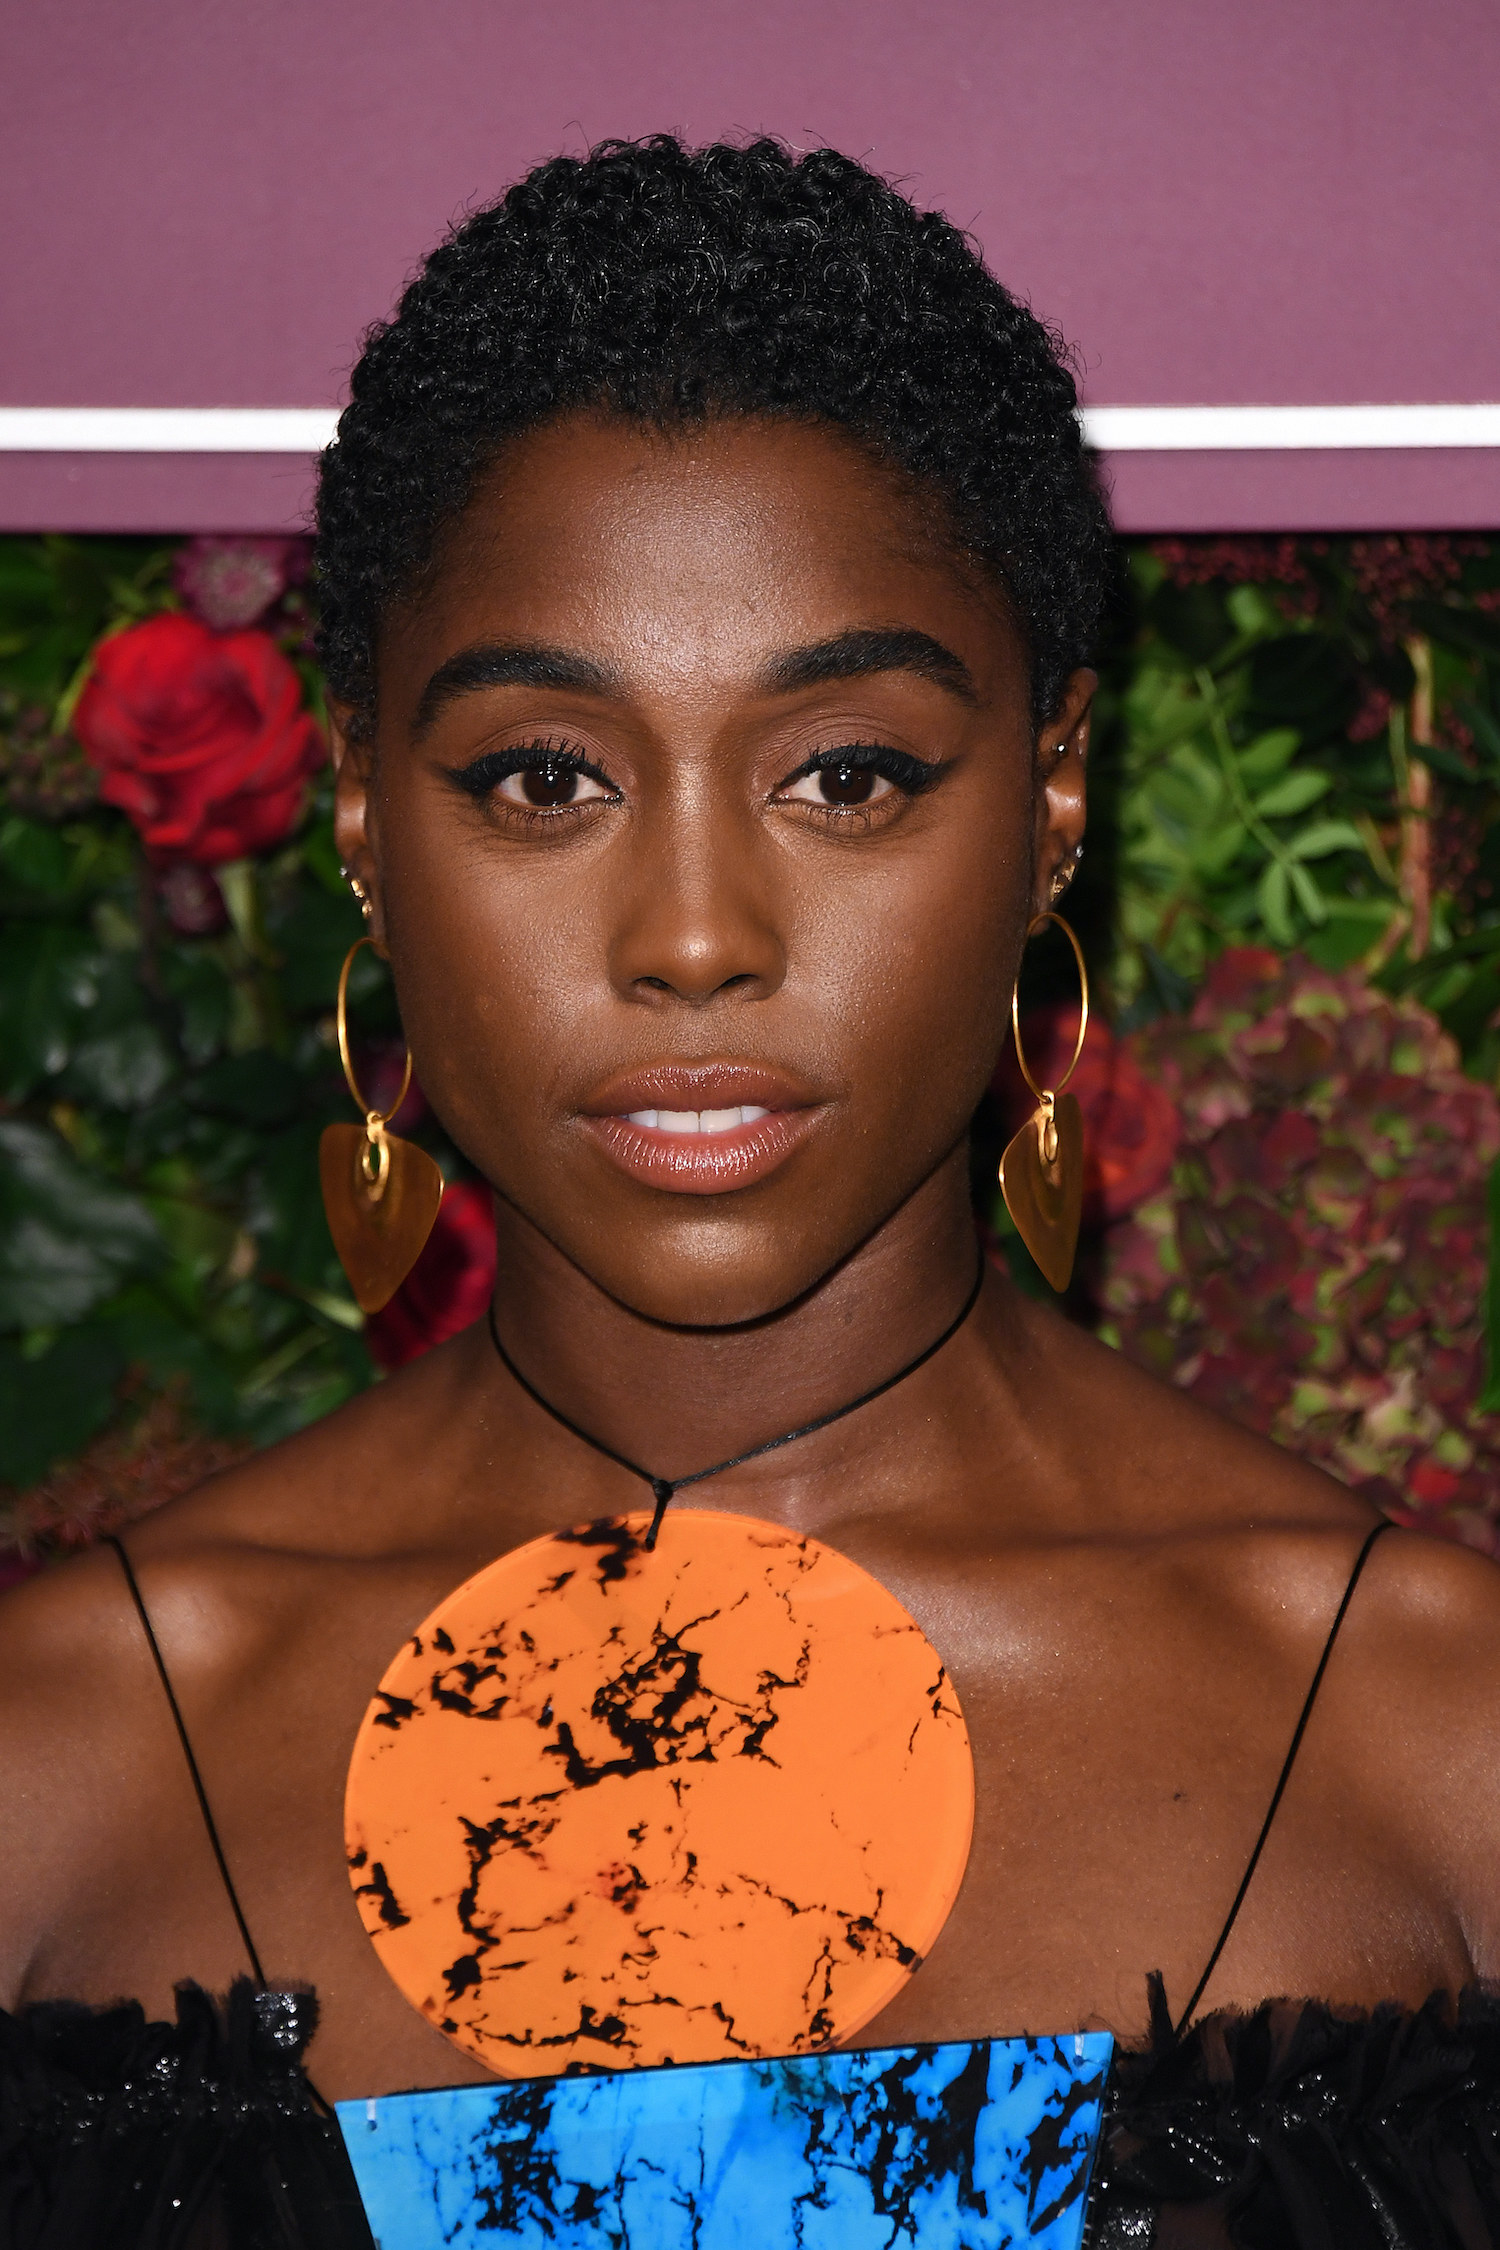 Lashana Lynch attends the 65th Evening Standard Theatre Awards at London Coliseum on November 24, 2019 in London, England.